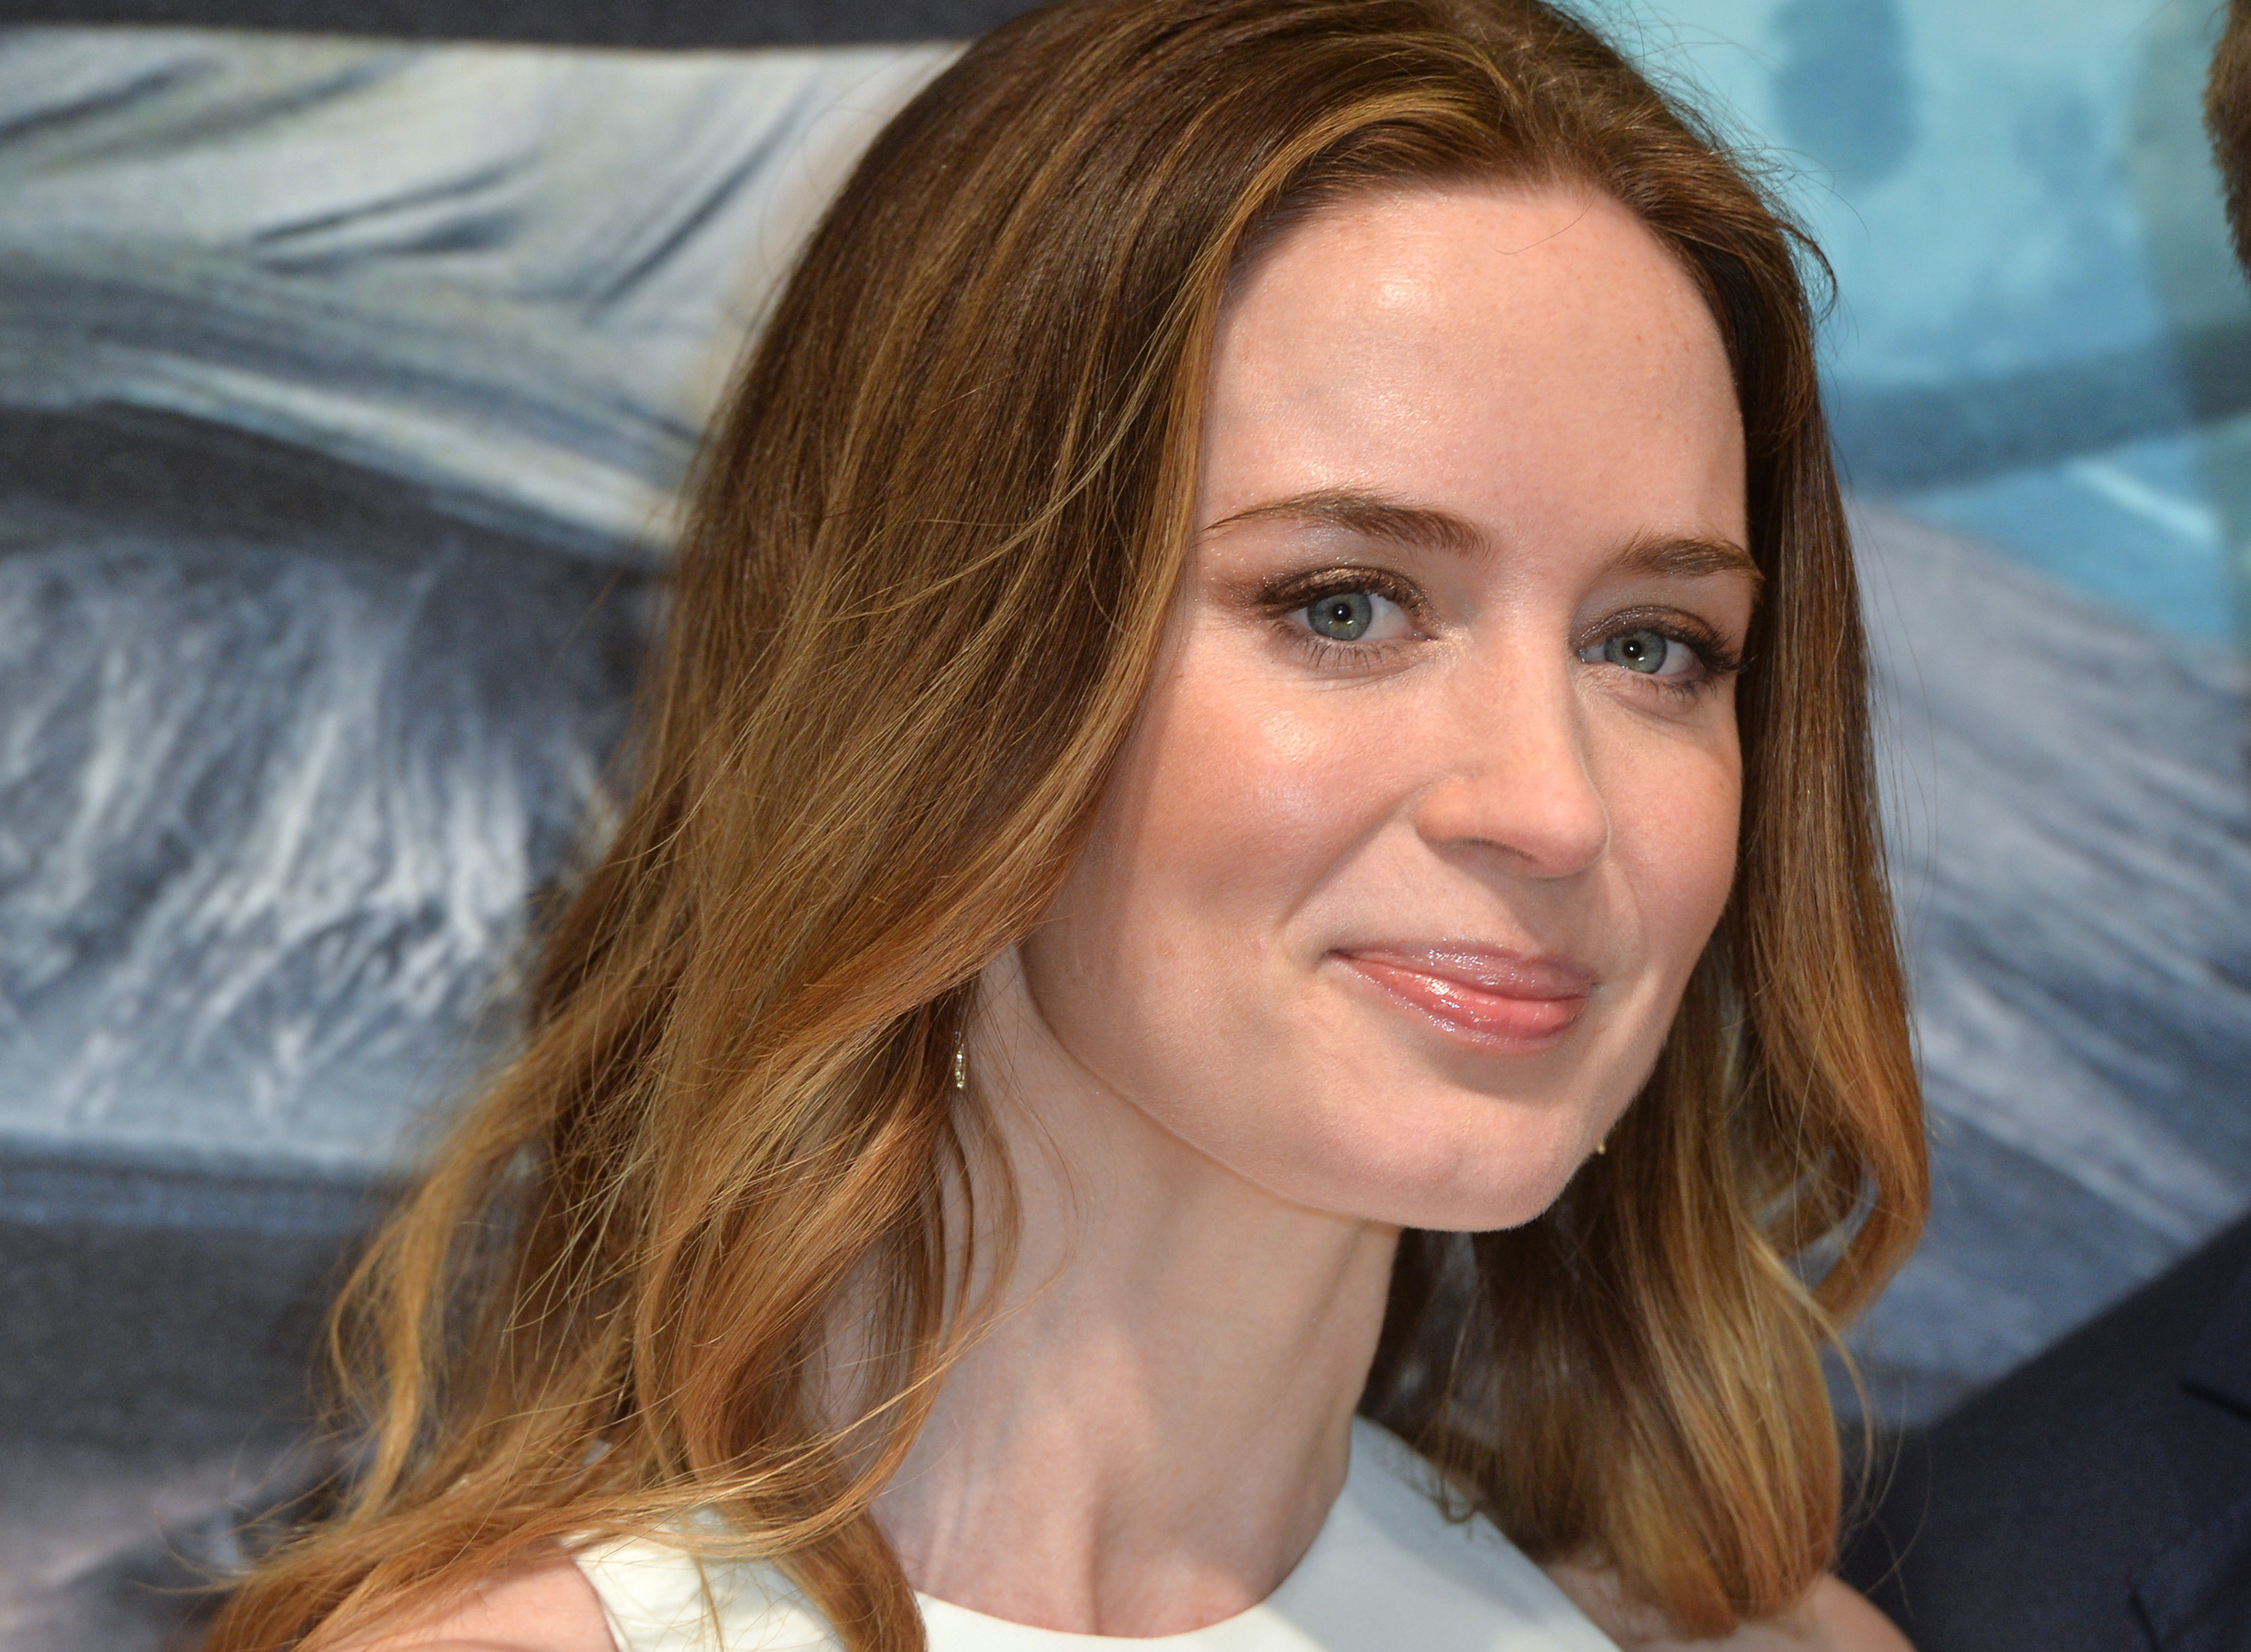 Emily Blunt attends the gala screening of  Into The Woods  at The Curzon Mayfair on January 7, 2015 in London, England